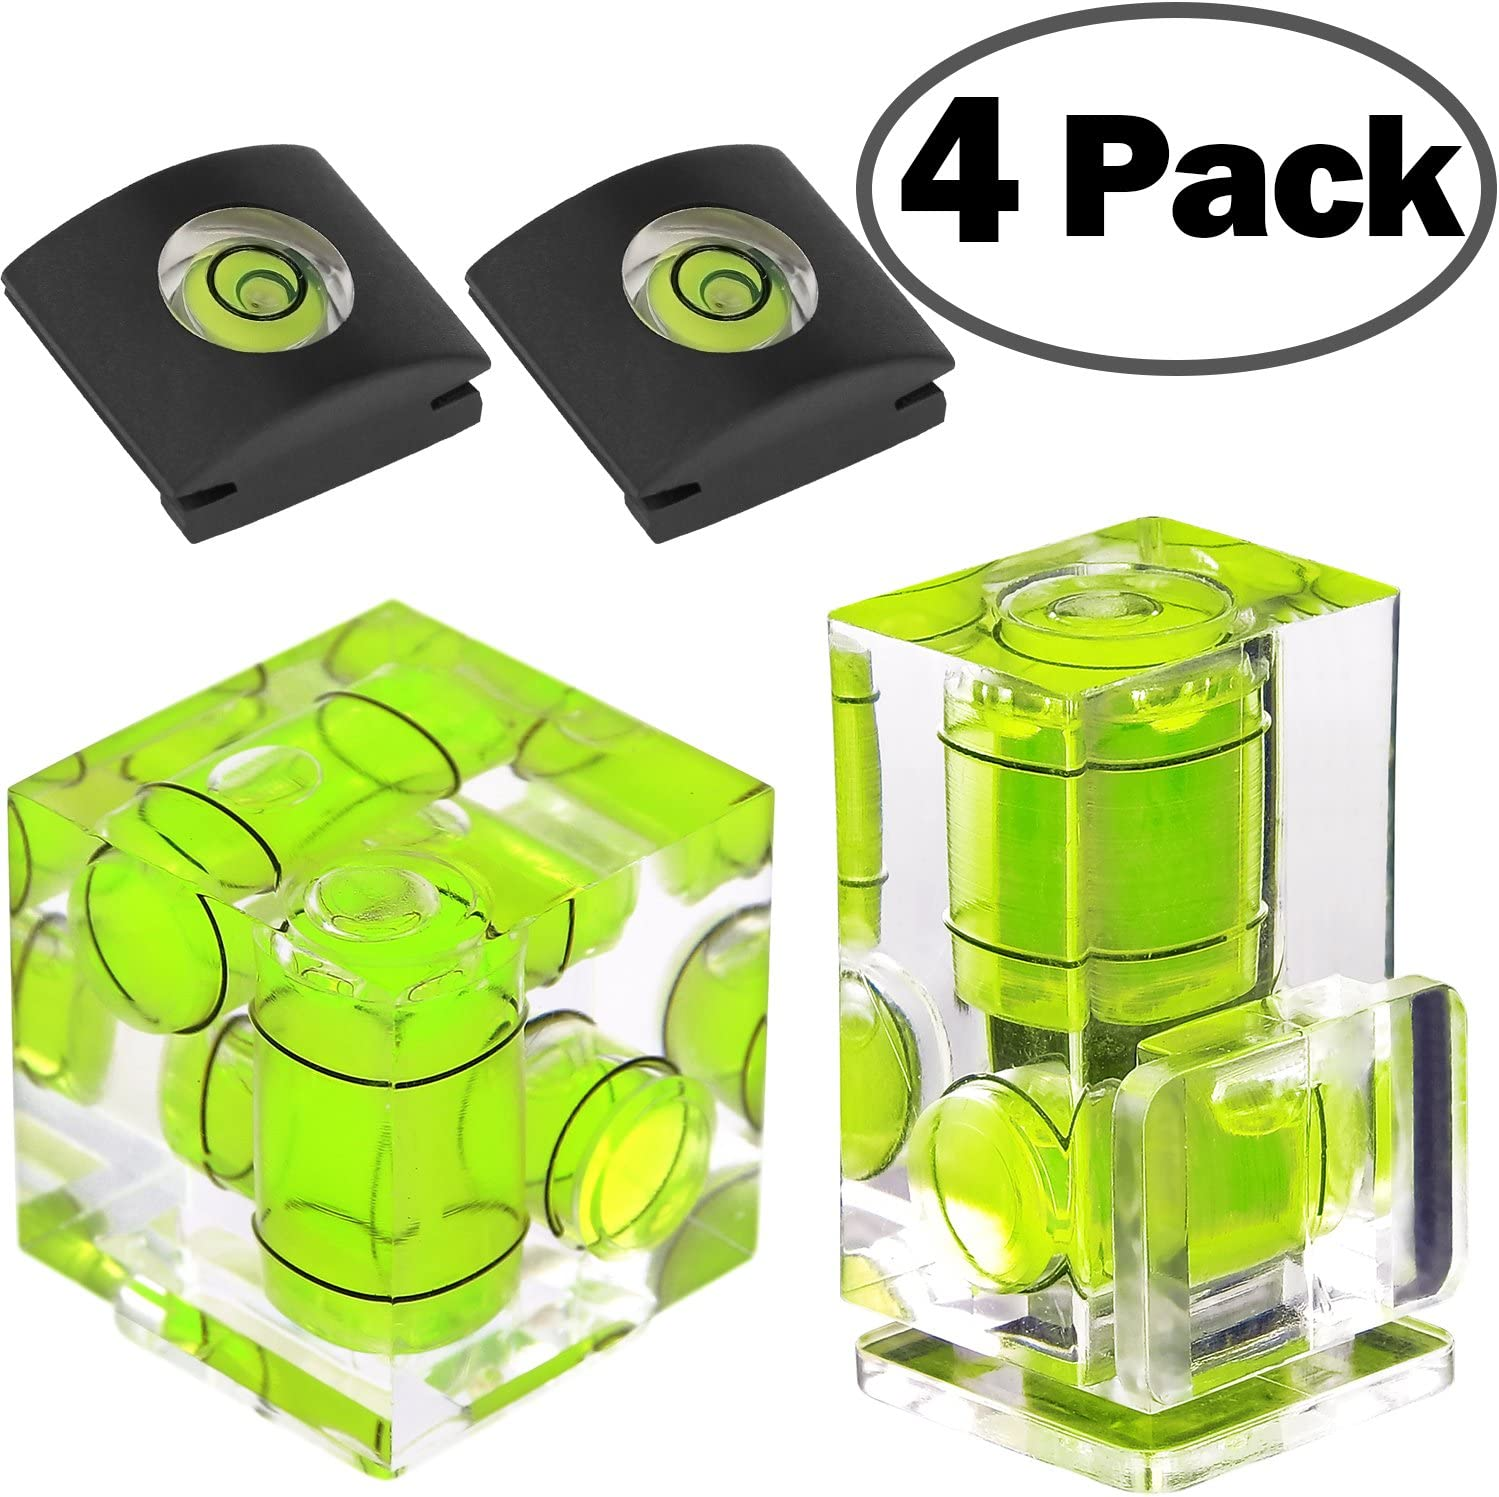 Pentax Digital and Film Cameras-4 Packs Olympus FOTYRIG Hot Shoe Level Camera Level Hot Shoe Bubble Level Hot Shoe Cover Combo Pack 3 Axis 2 Axis 1Axis for Canon and Nikon